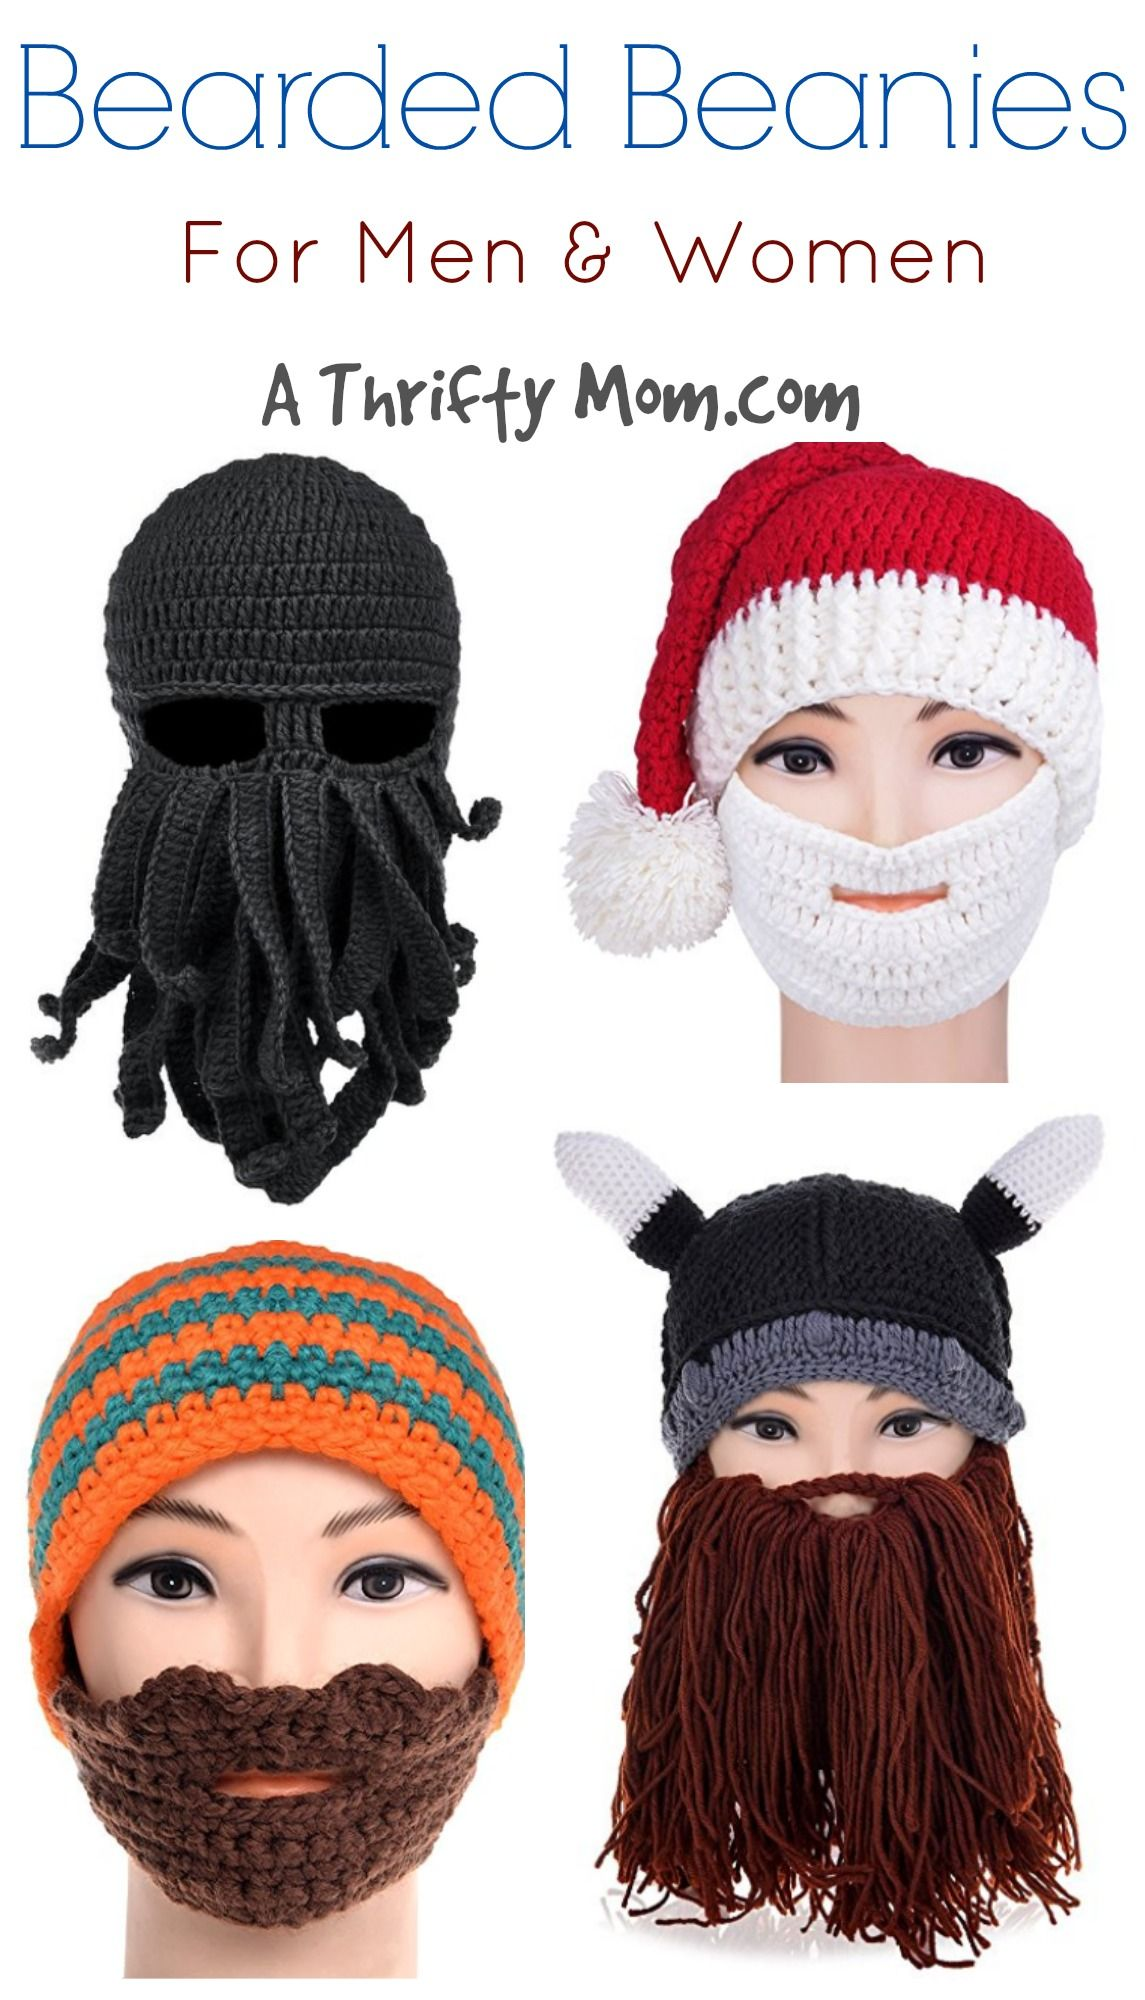 bcbf11732171d These are so funny. beard-beanie-hat-knit-hat-winter-warm-octopus-hat- windproof-funny-for-men-women